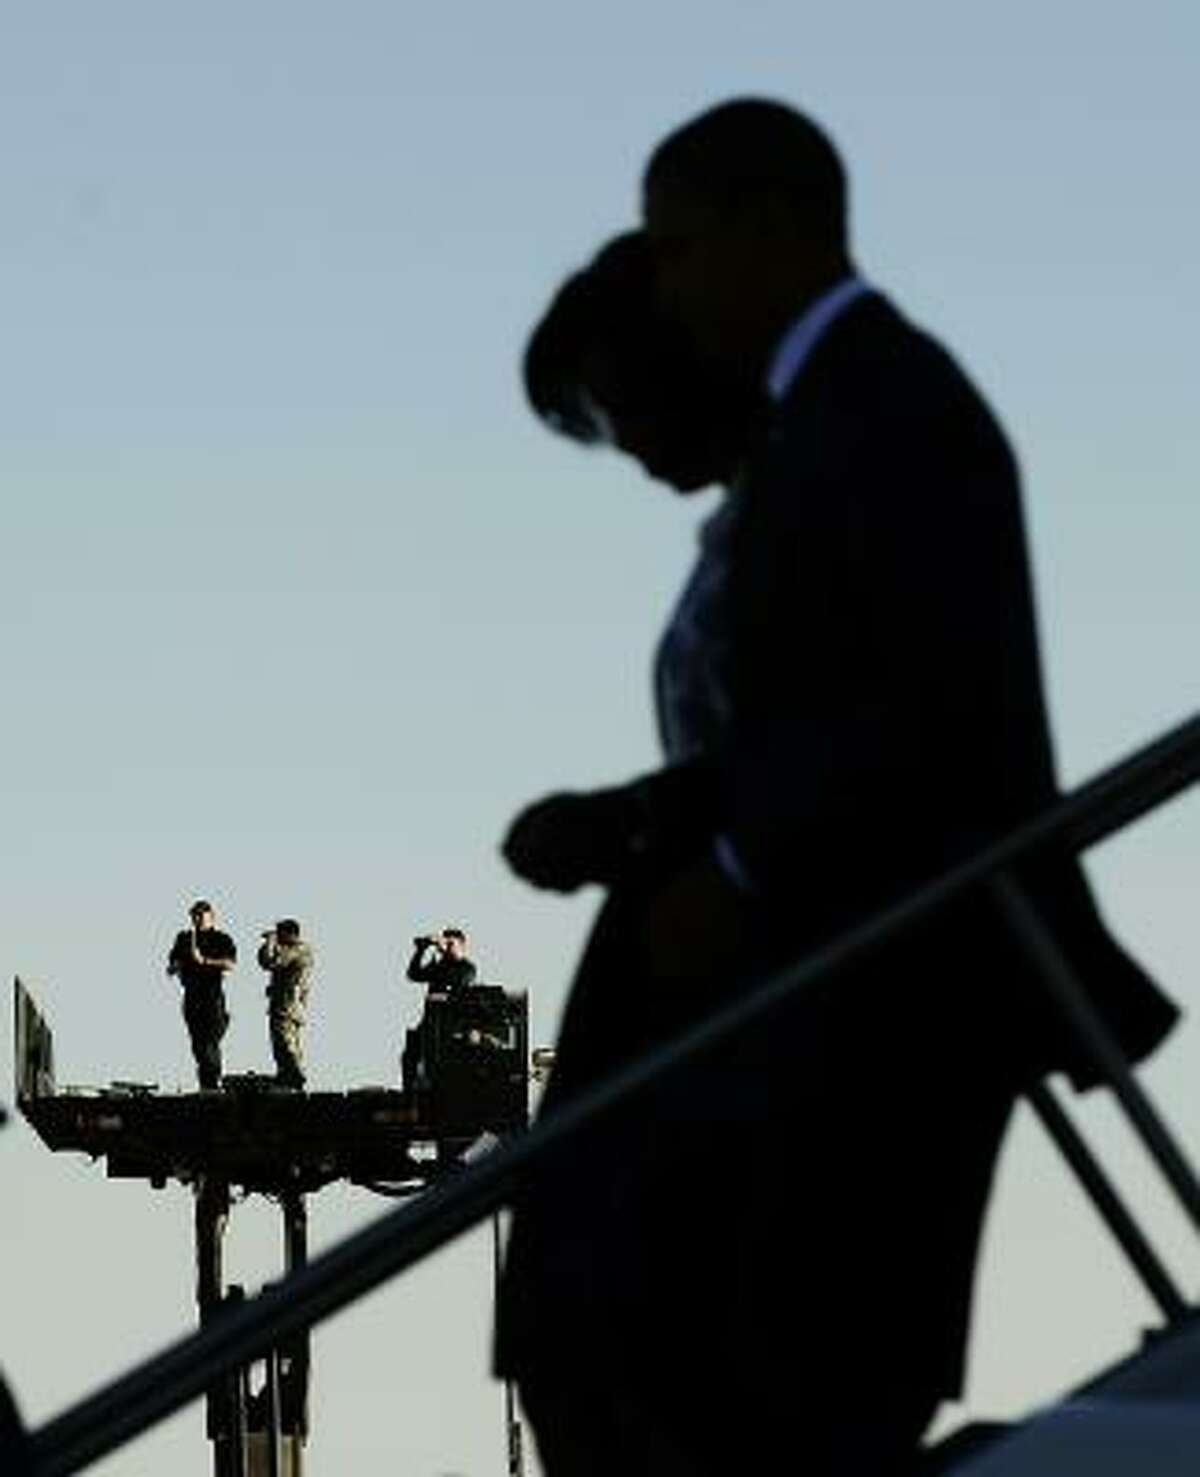 Security personnel keep vigil as US President Barack Obama and First Lady Michelle Obama disembark from Air Force One as they arrive at Davis-Monthan Air Force Base in Tucson, Arizona.